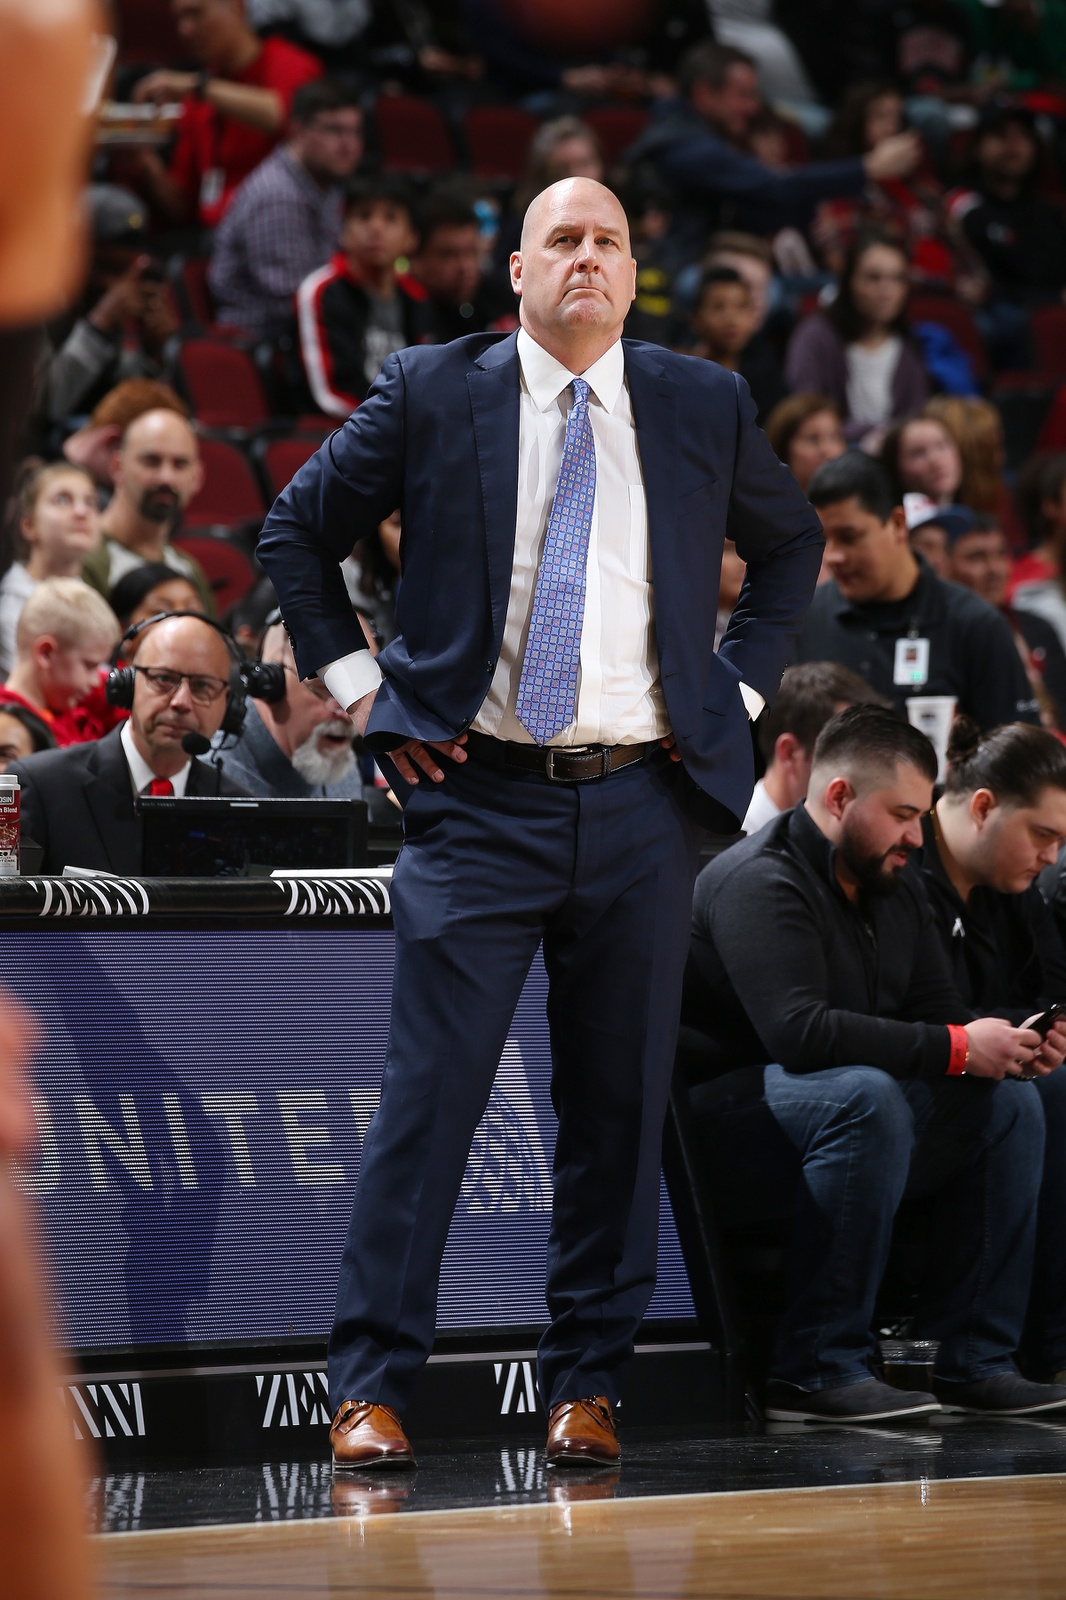 Head Coach Jim Boylen of the Chicago Bulls looks on during the game against the Brooklyn Nets on January 6, 2019 at the United Center in Chicago, Illinois.